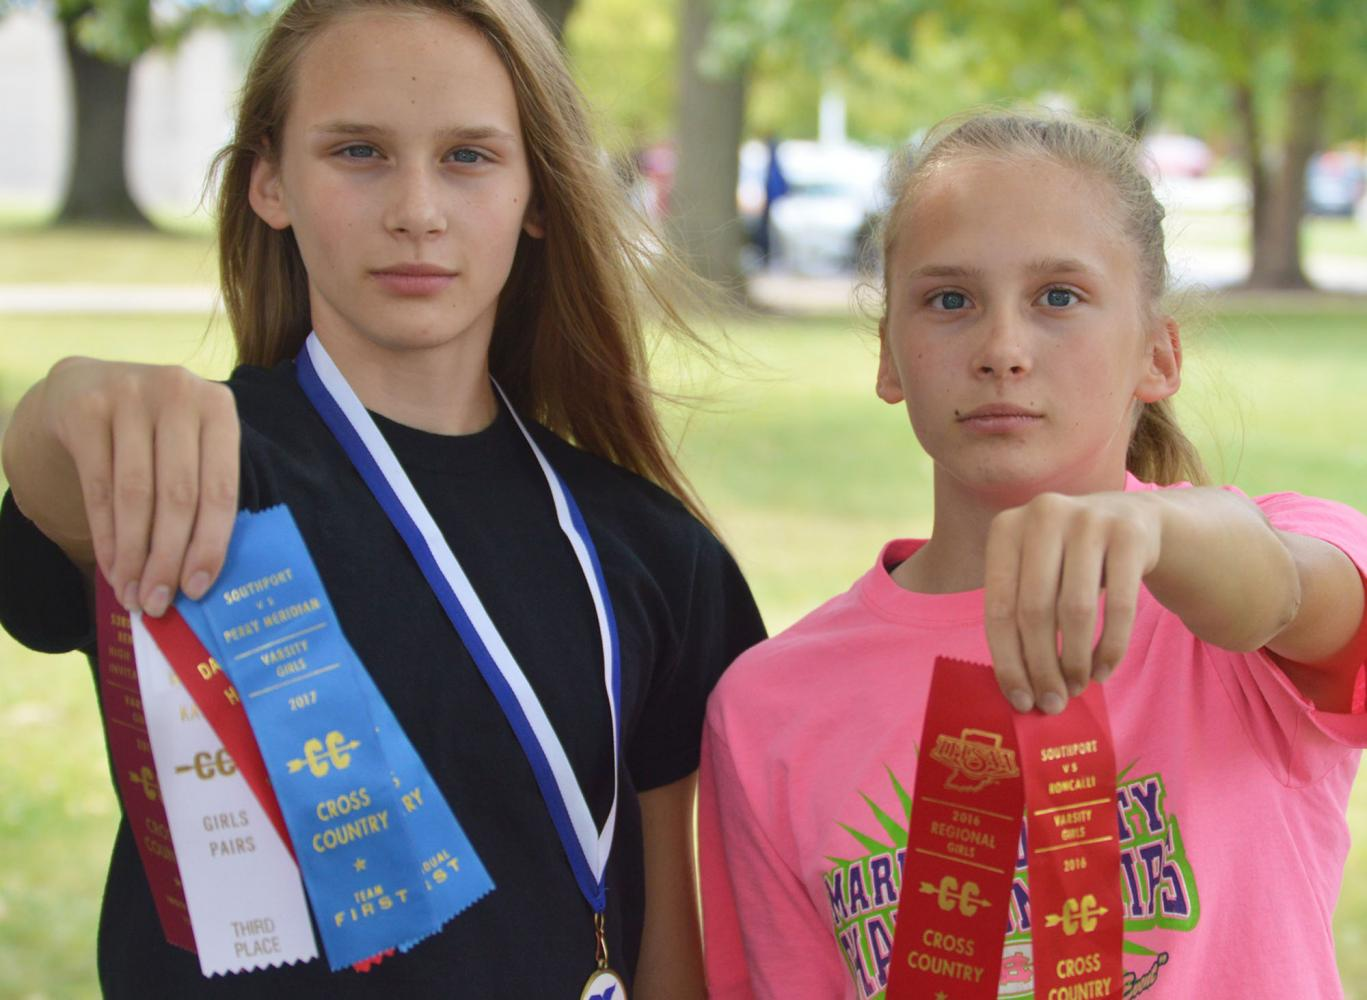 Lexie (left) and Bella (right) Green hold up ribbons they have won in cross country.